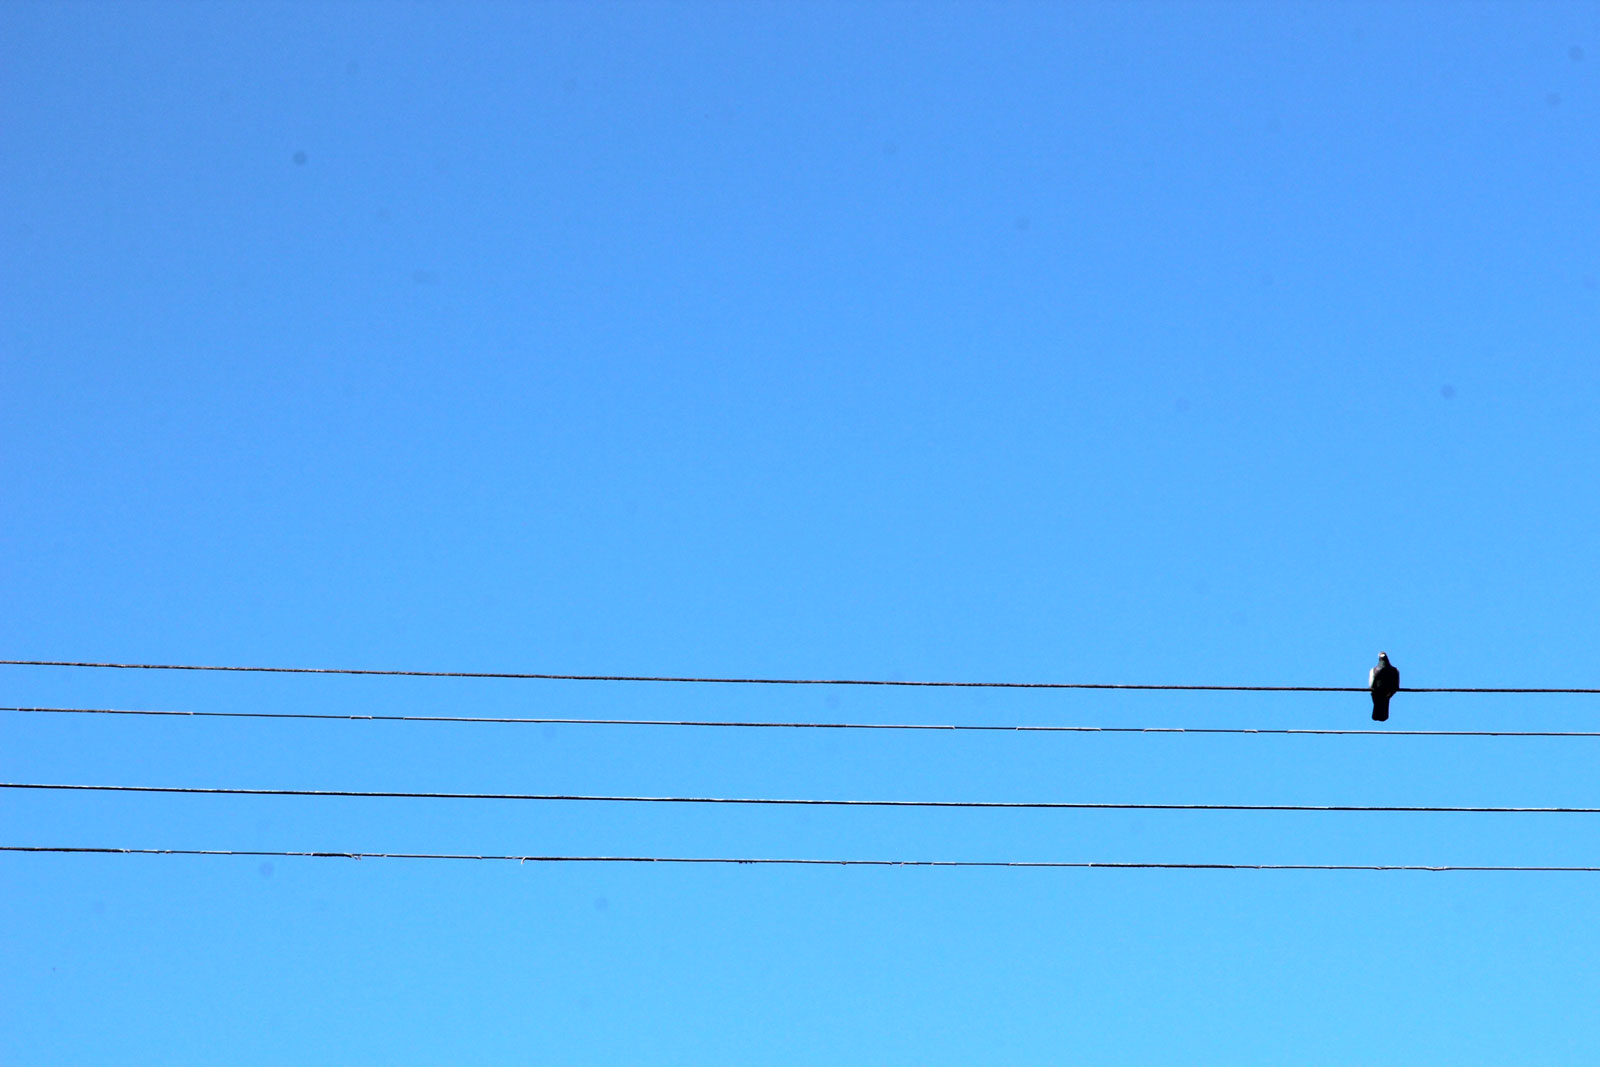 One bird sitting on a telephone wire.